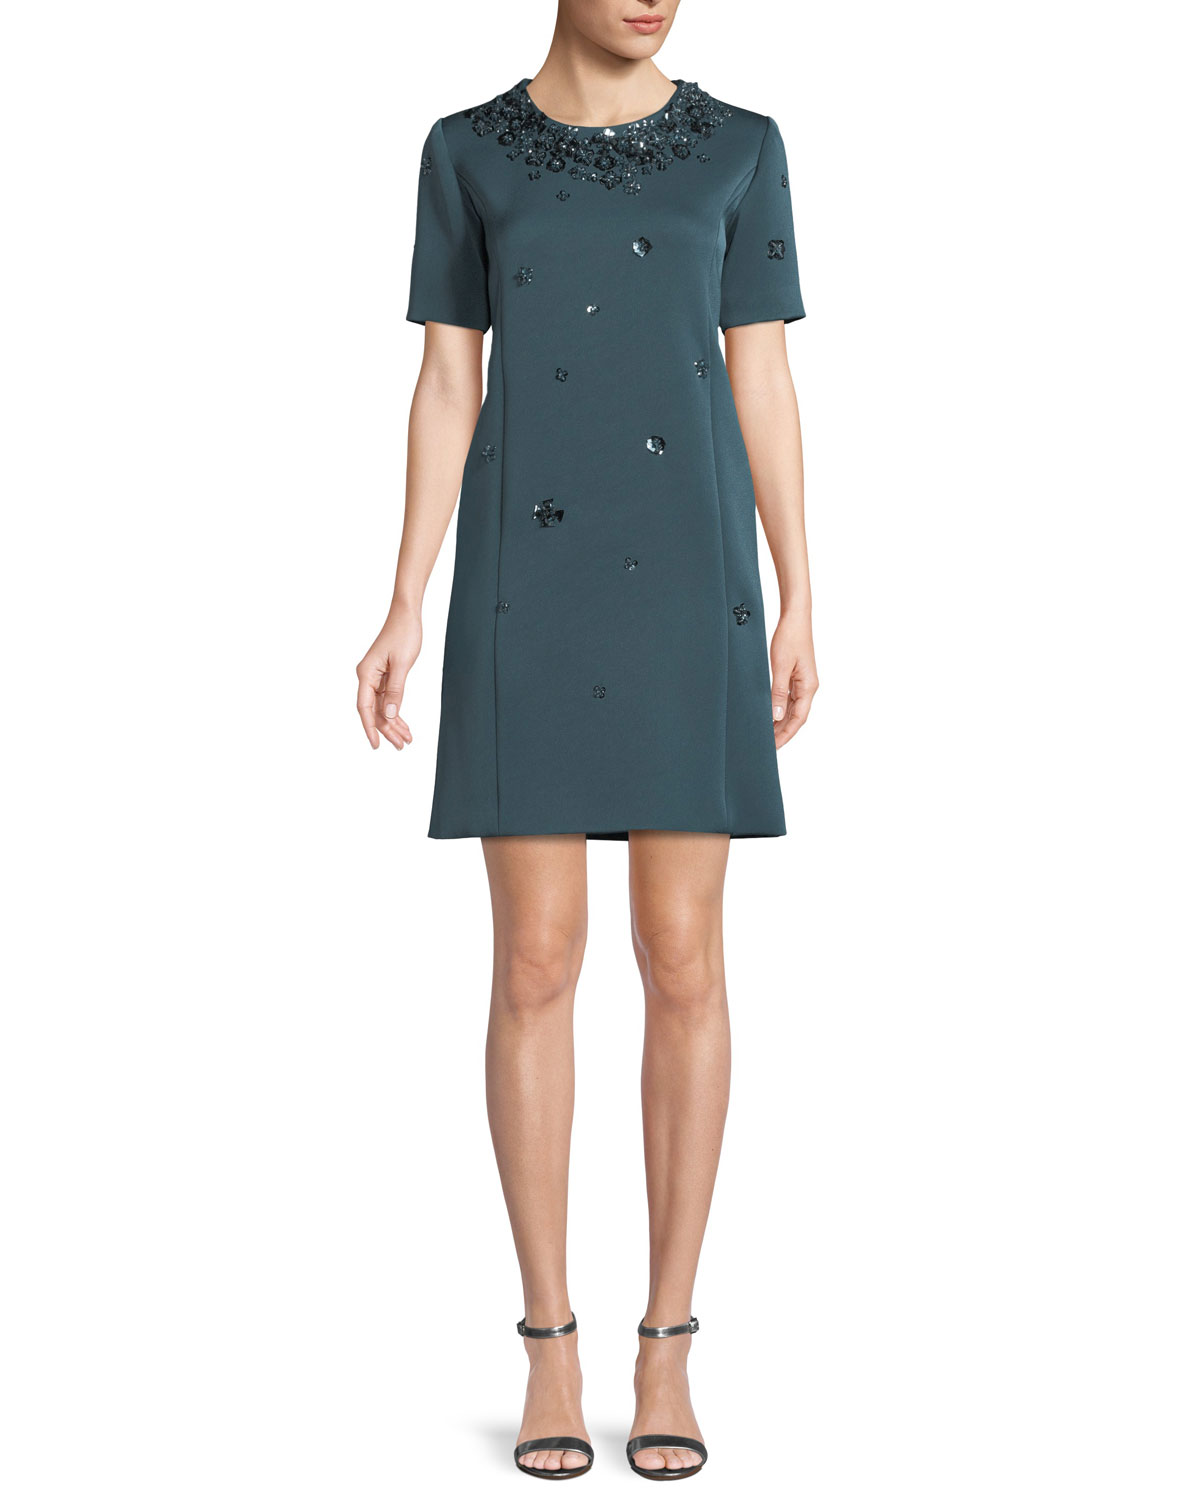 ZAC POSEN Cap-Sleeve A-Line Beaded-Embroidered Short Crepe Dress in Blue